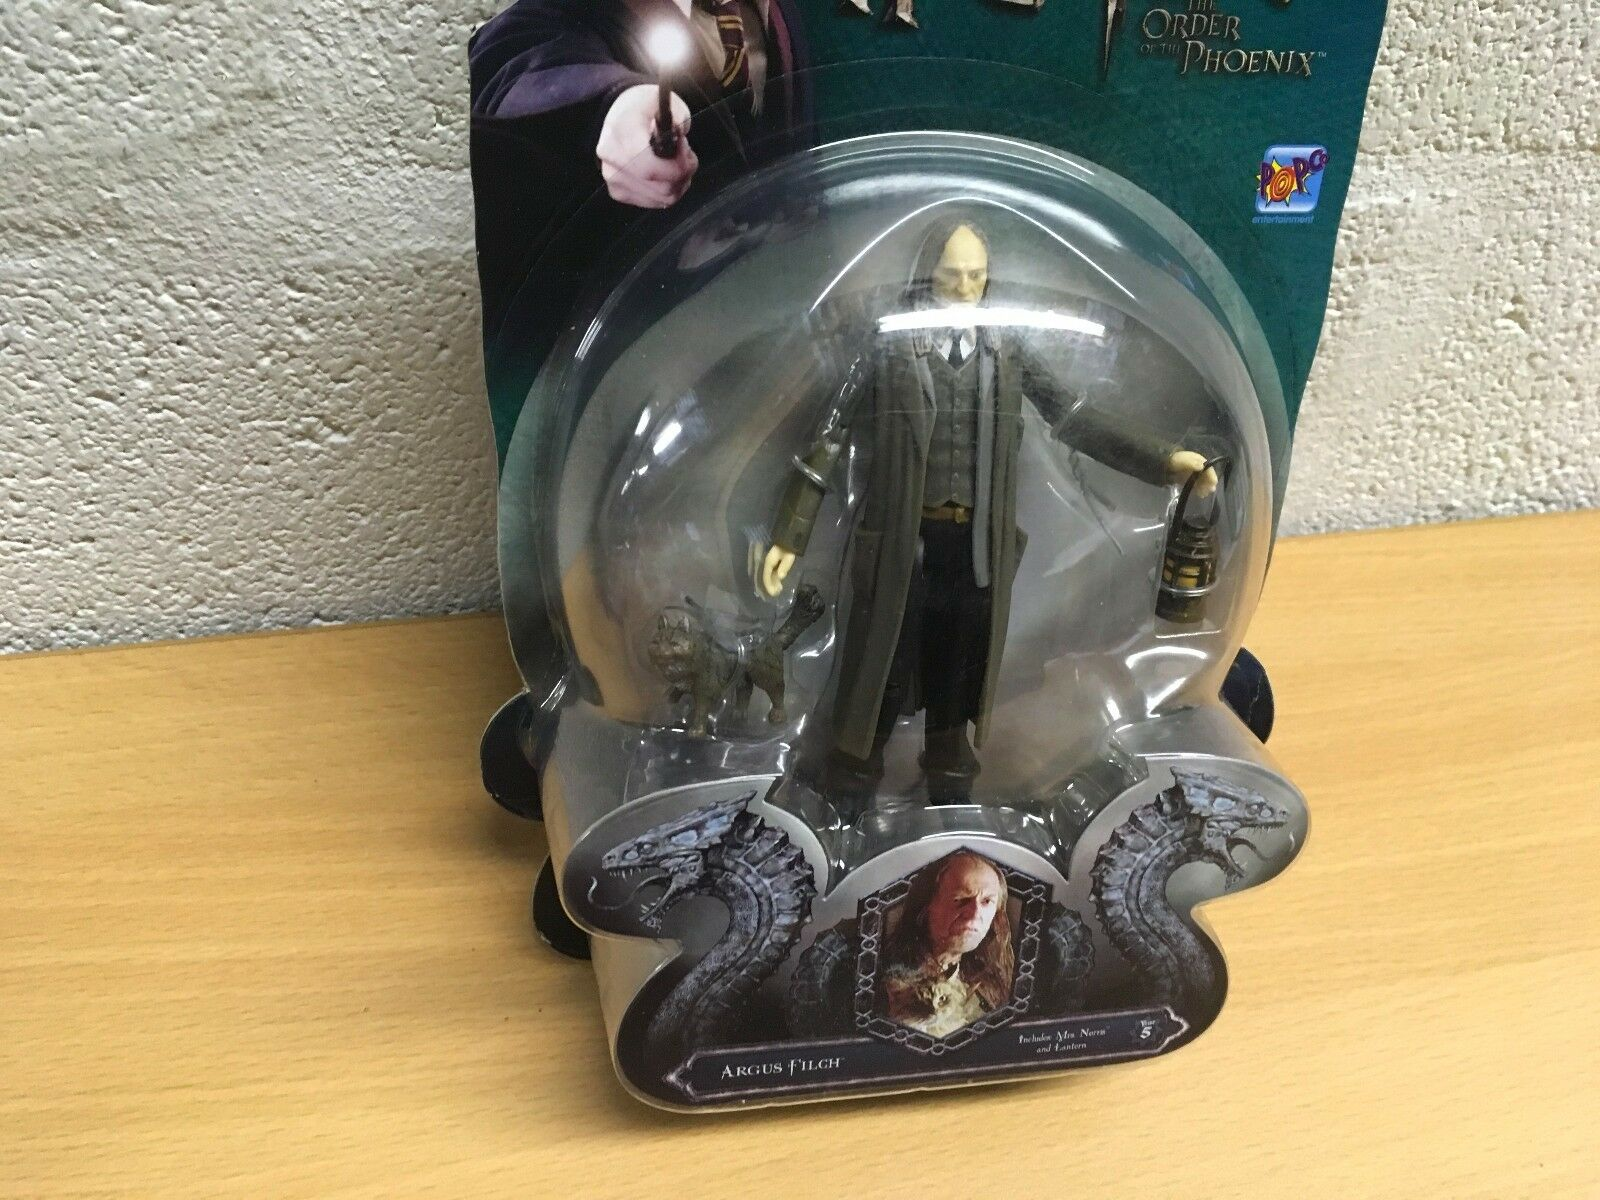 HARRY POTTER ORDER OF THE PHOENIX FIGURE FIGURE FIGURE NEW LORD VOLDERMORT OR ARGUS FILCH a10ecd